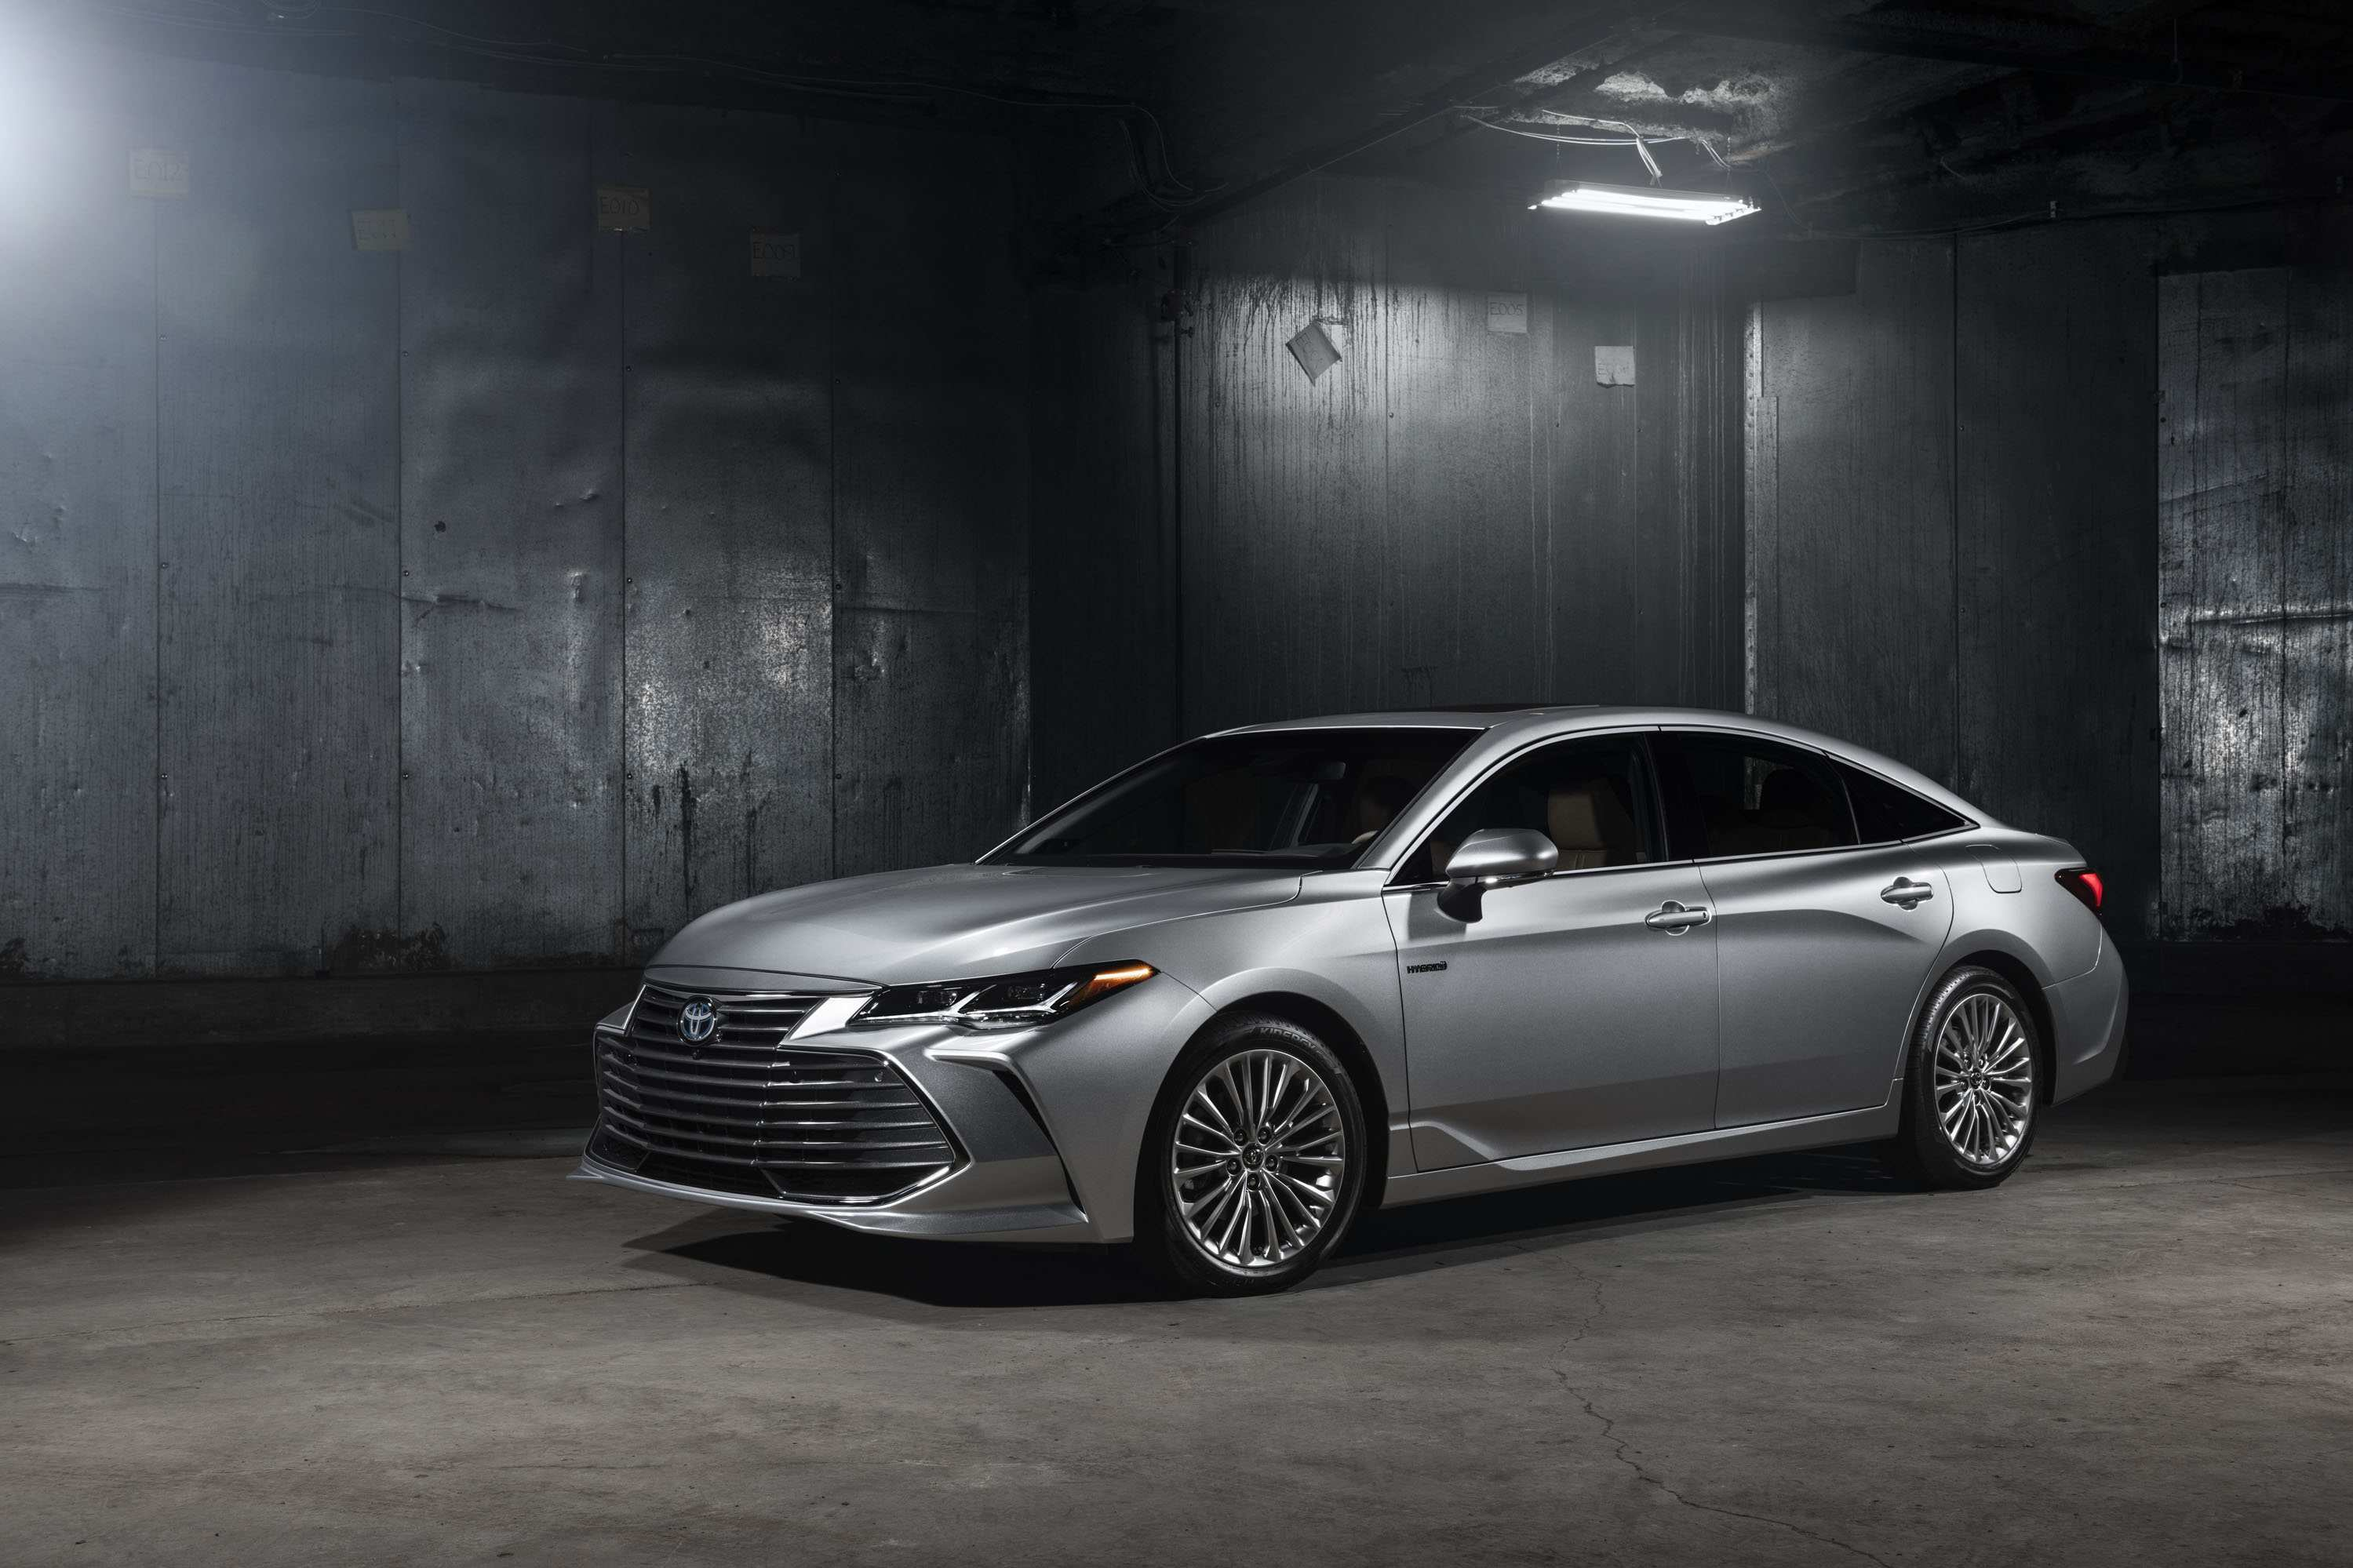 67 Great Best Toyota Avalon Hybrid 2019 Price Overview with Best Toyota Avalon Hybrid 2019 Price